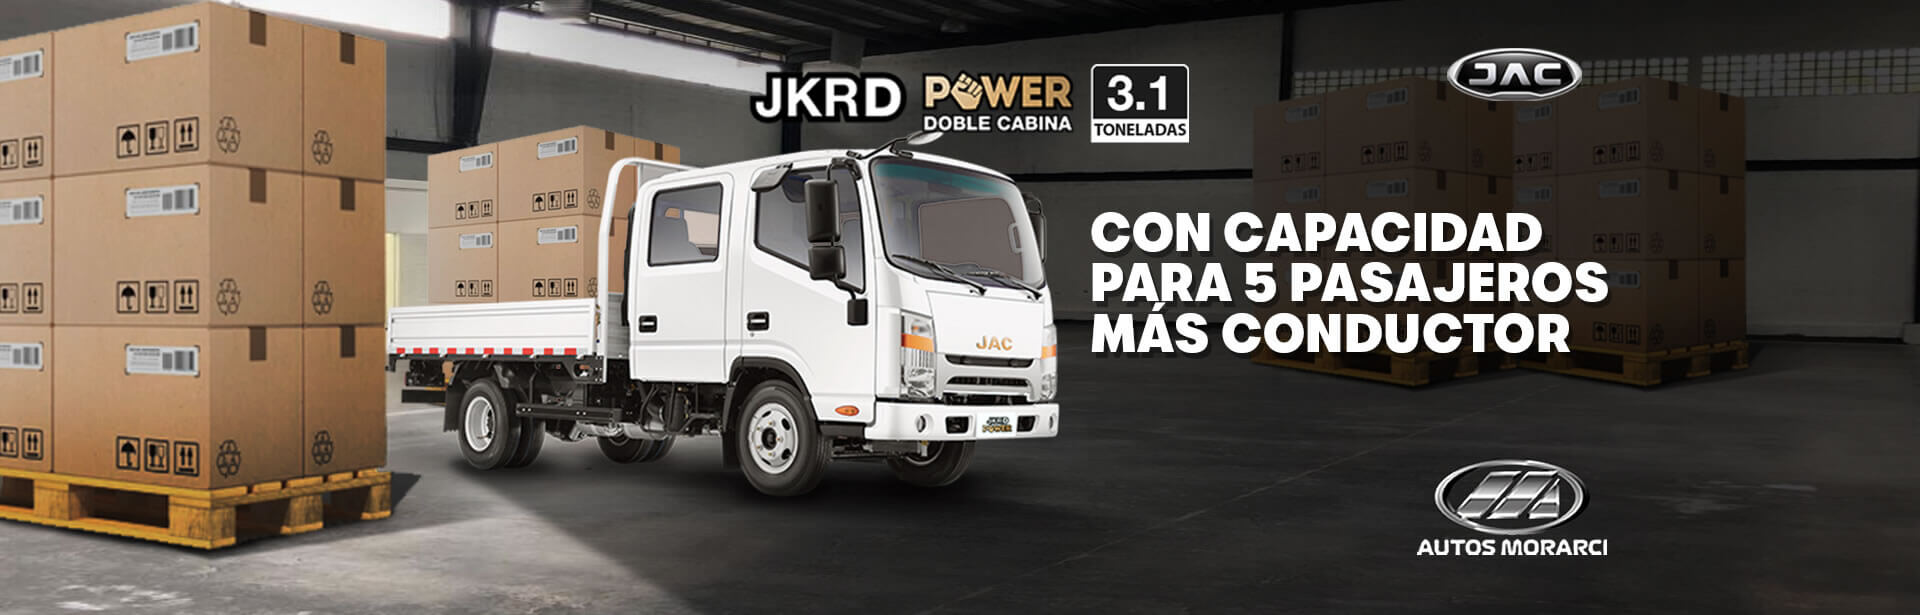 JKRD DOBLE CABINA POWER